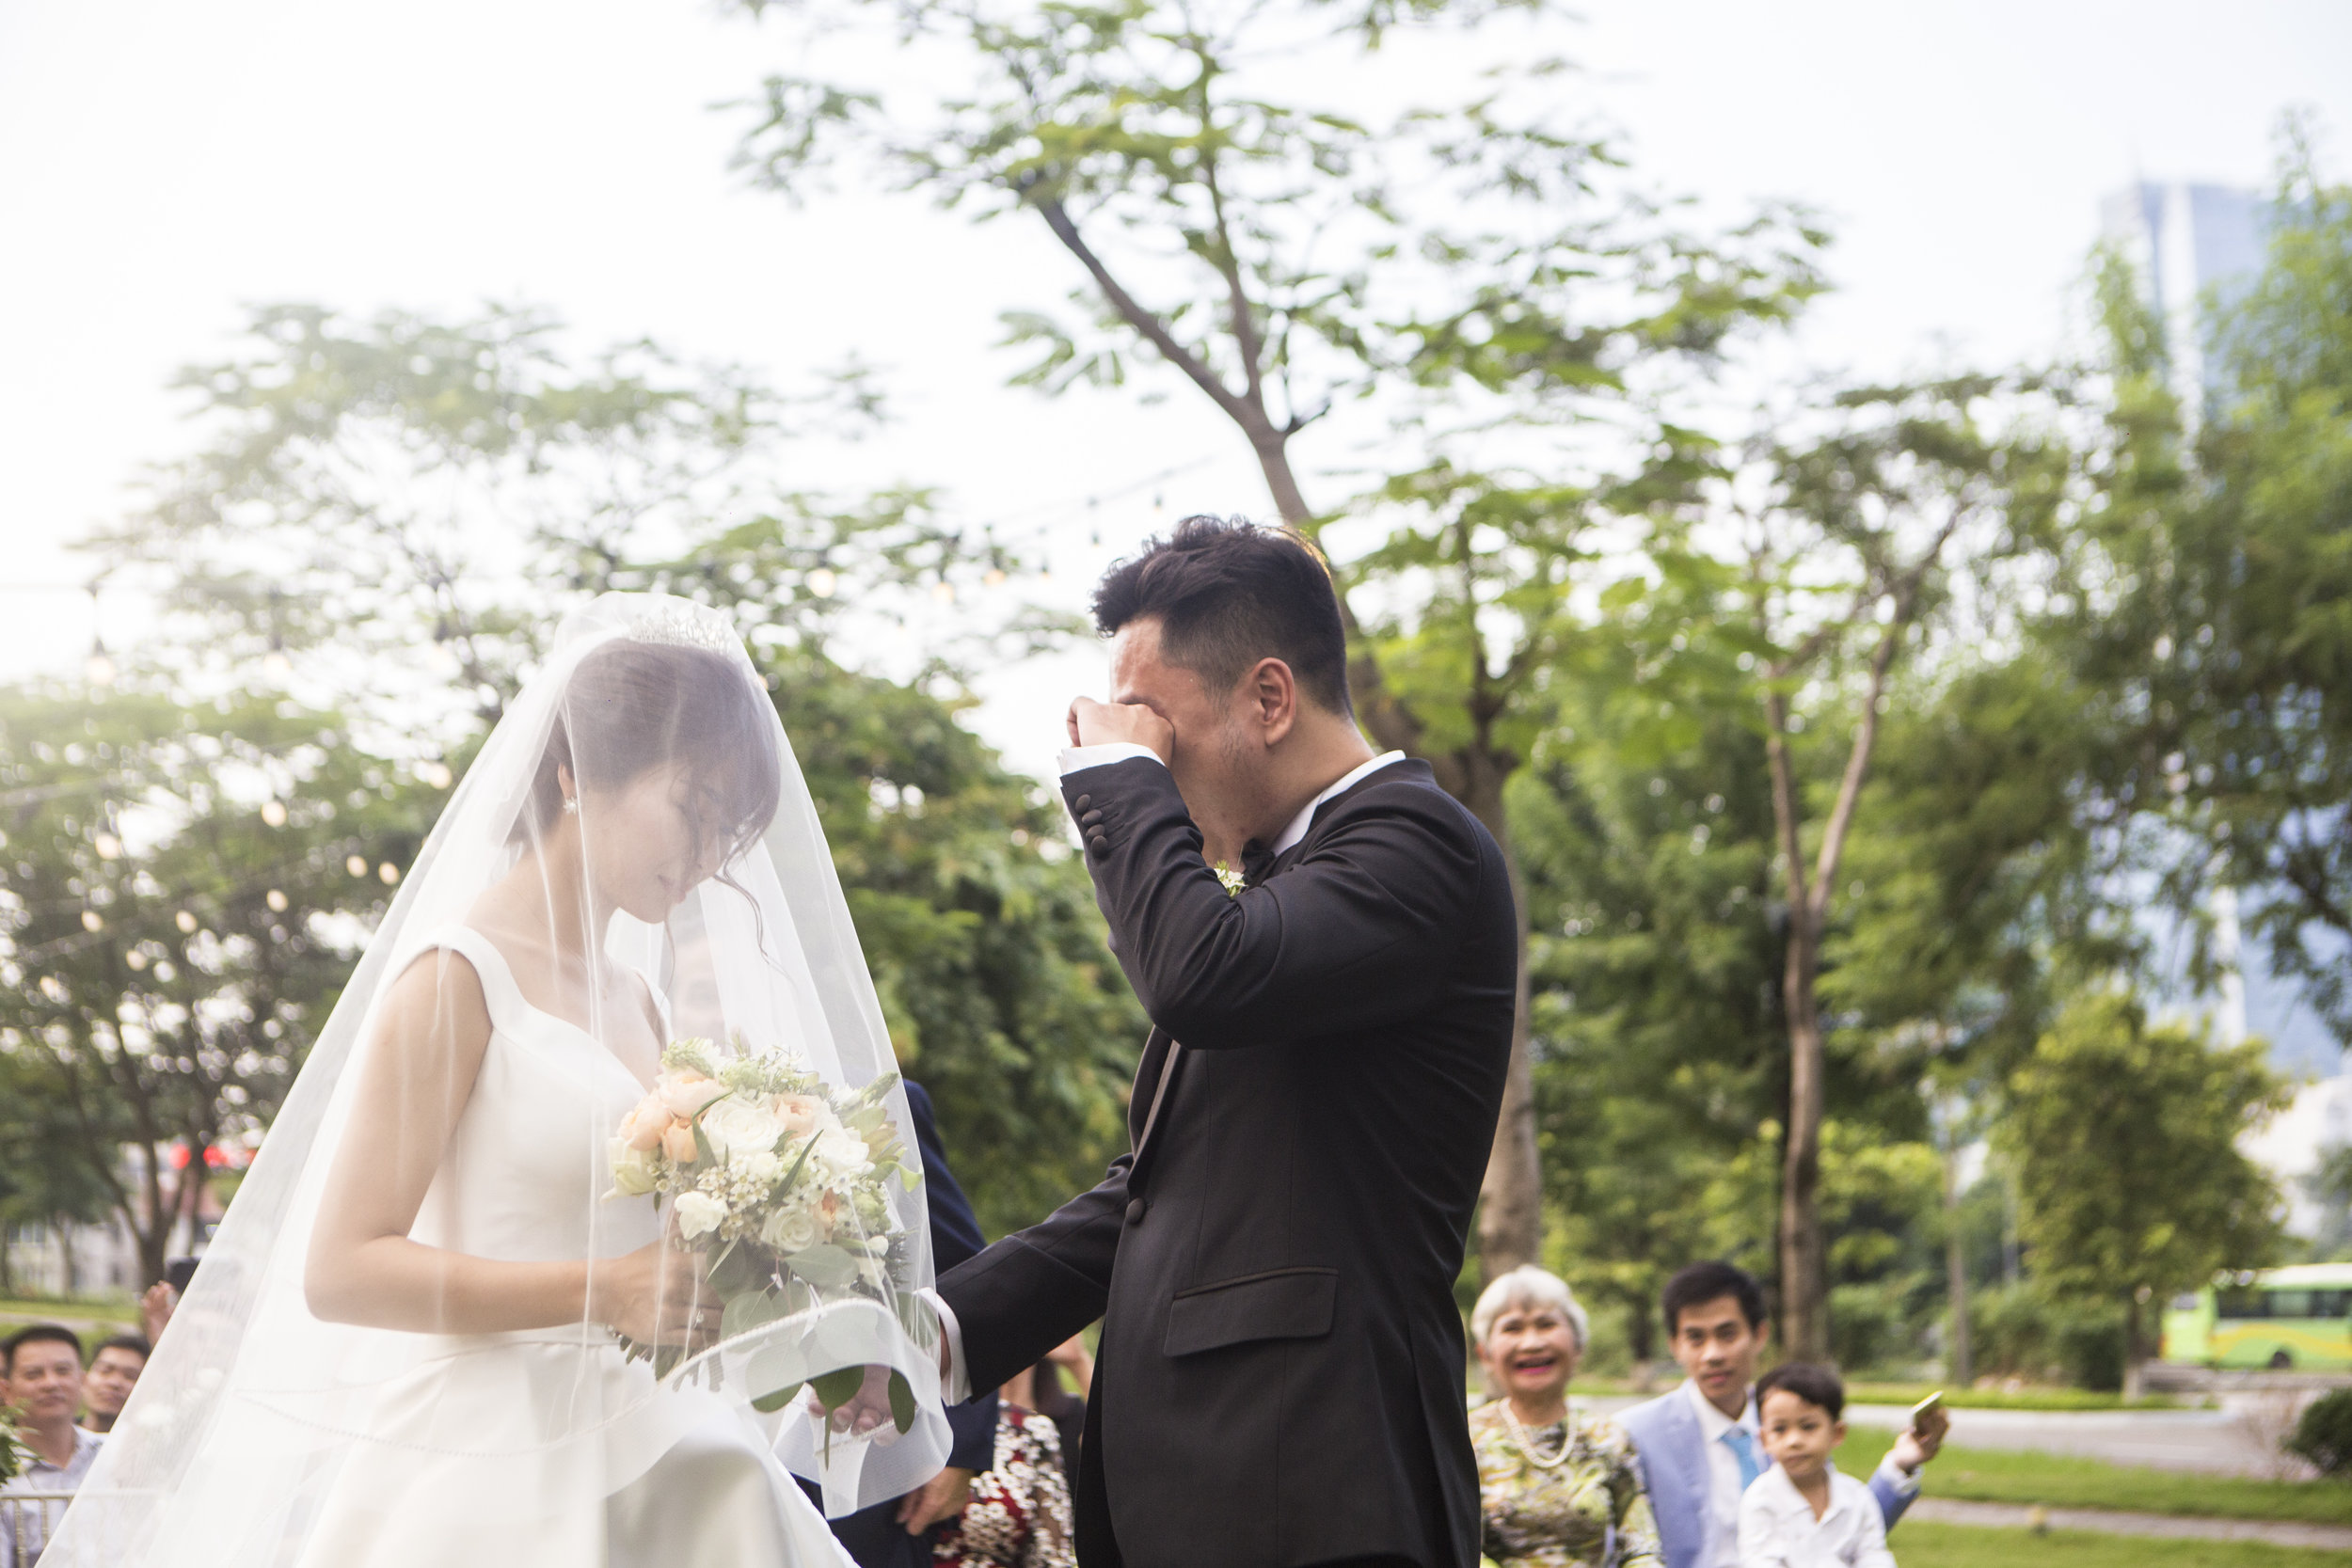 IT'S ALL ABOUT LOVE - Ha & Nam's wedding